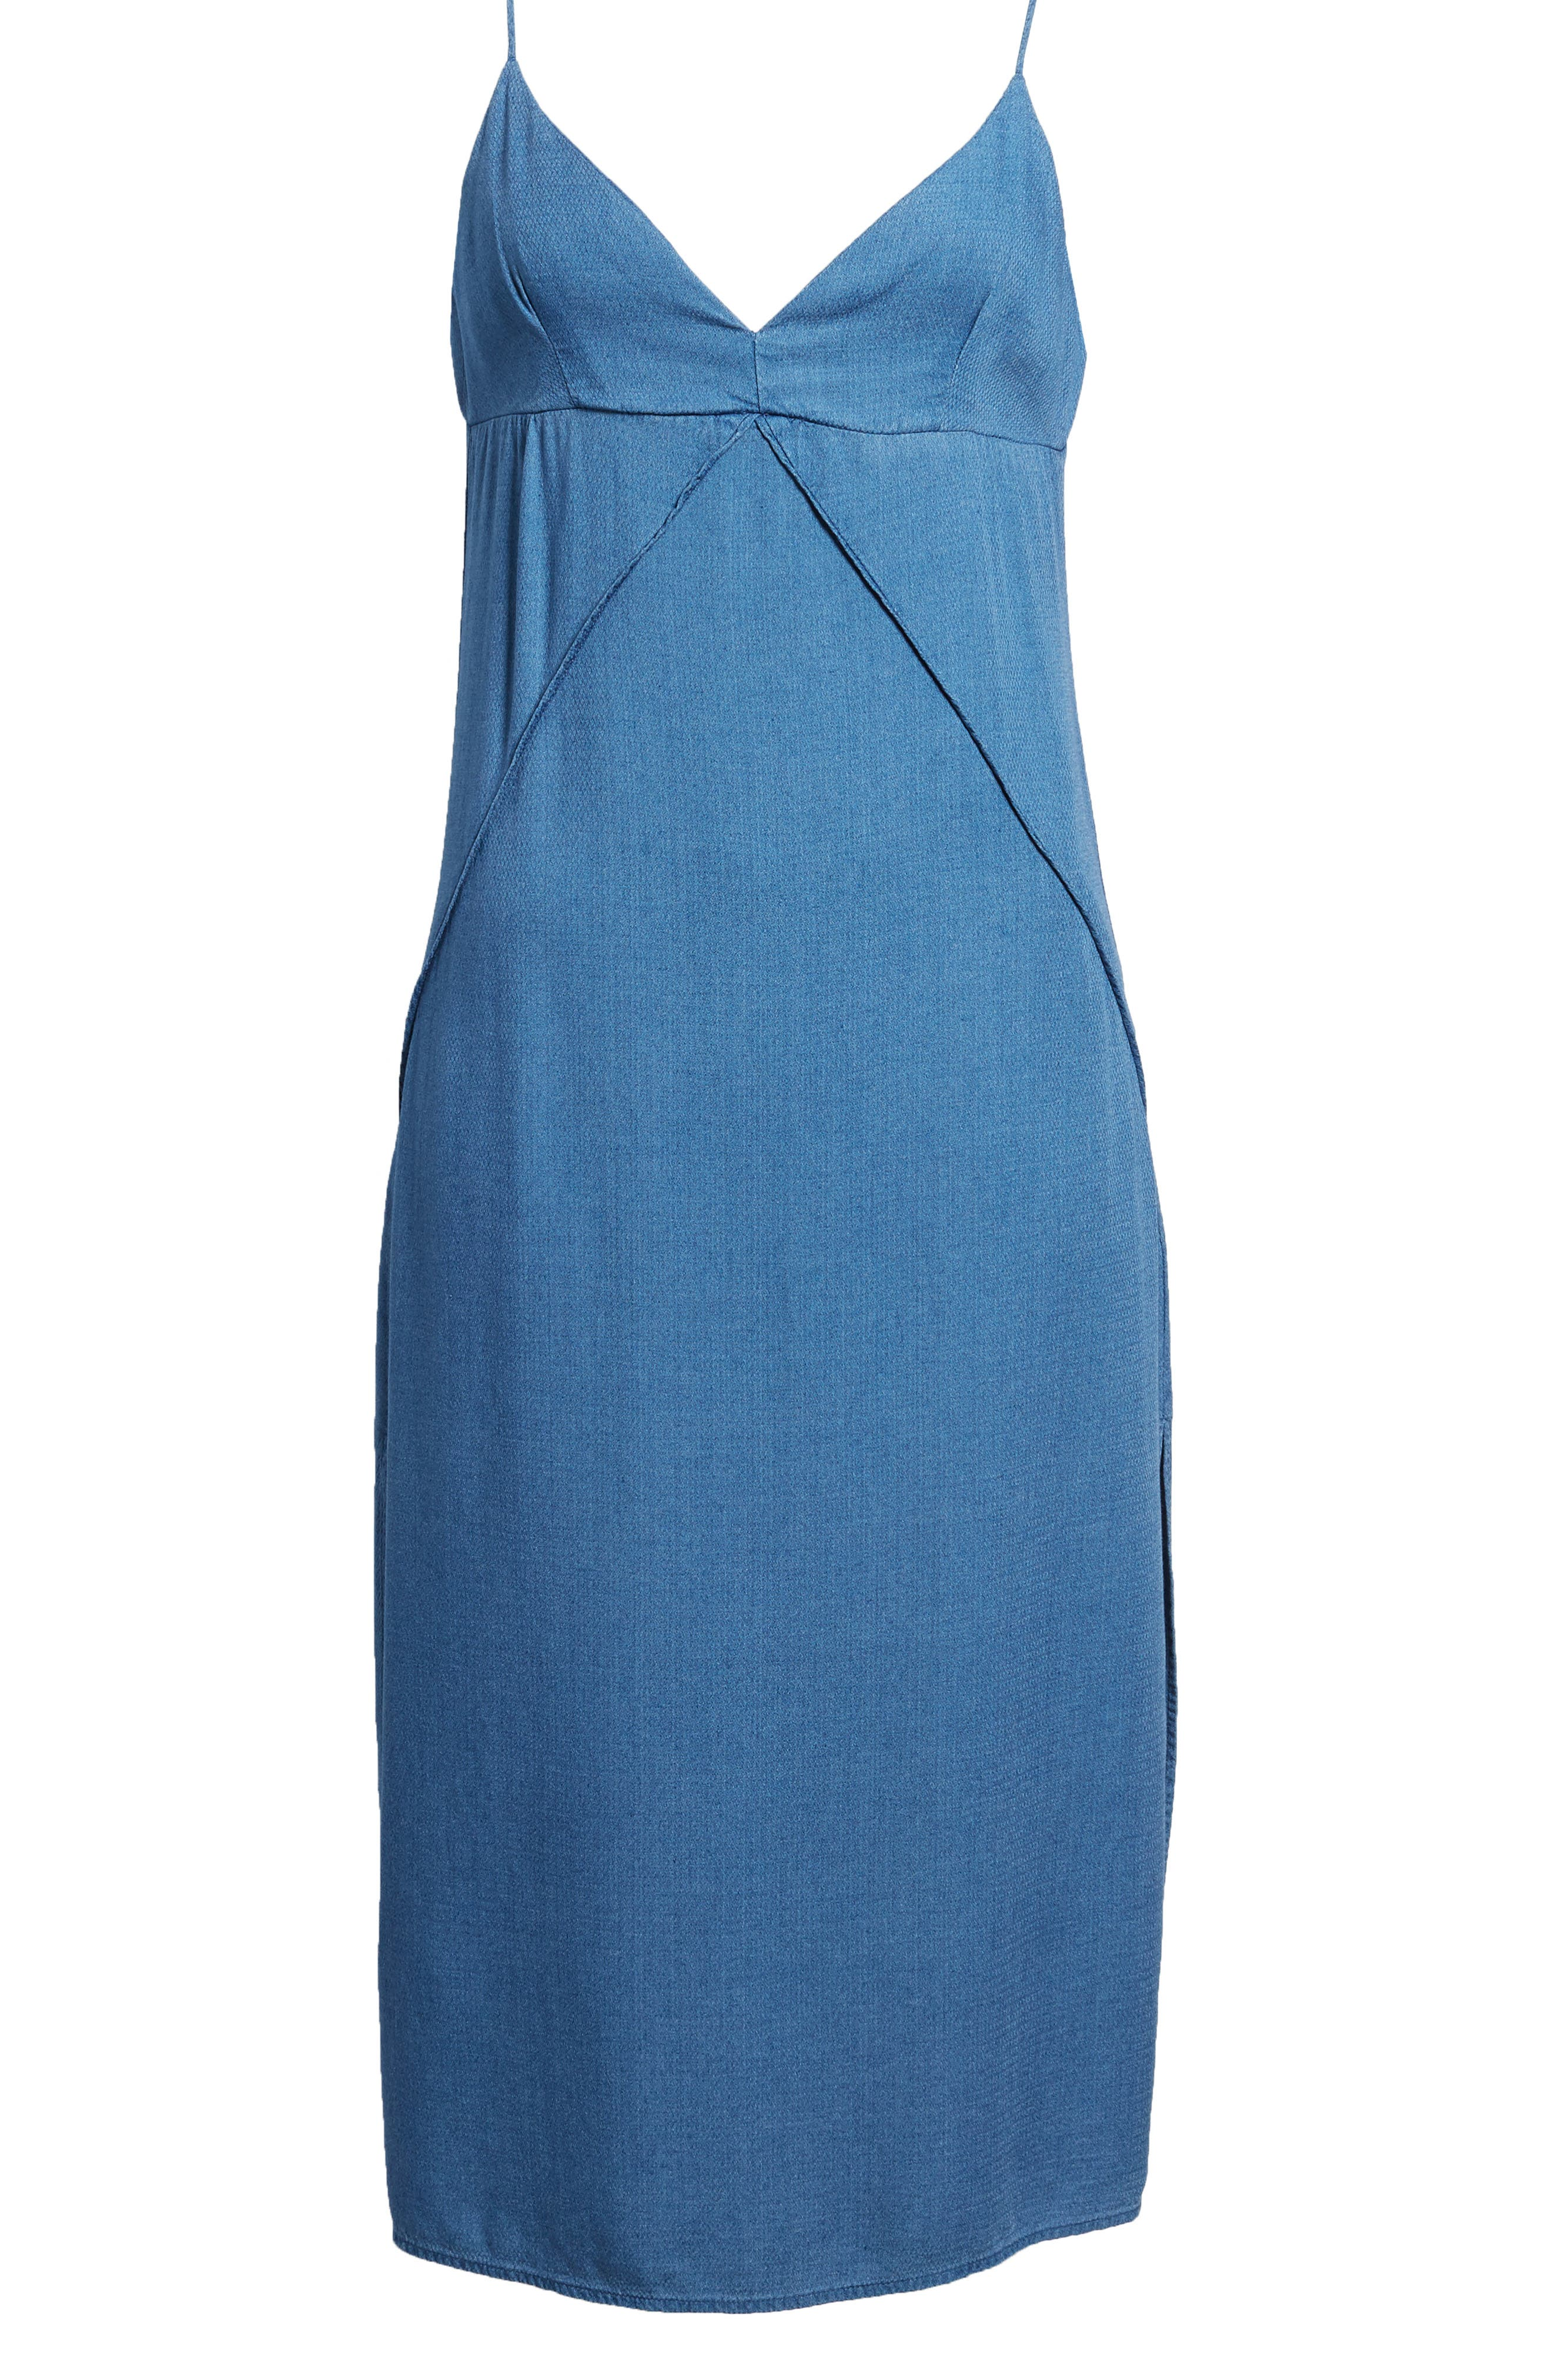 Chambray Camisole Dress,                             Alternate thumbnail 6, color,                             Med Wash